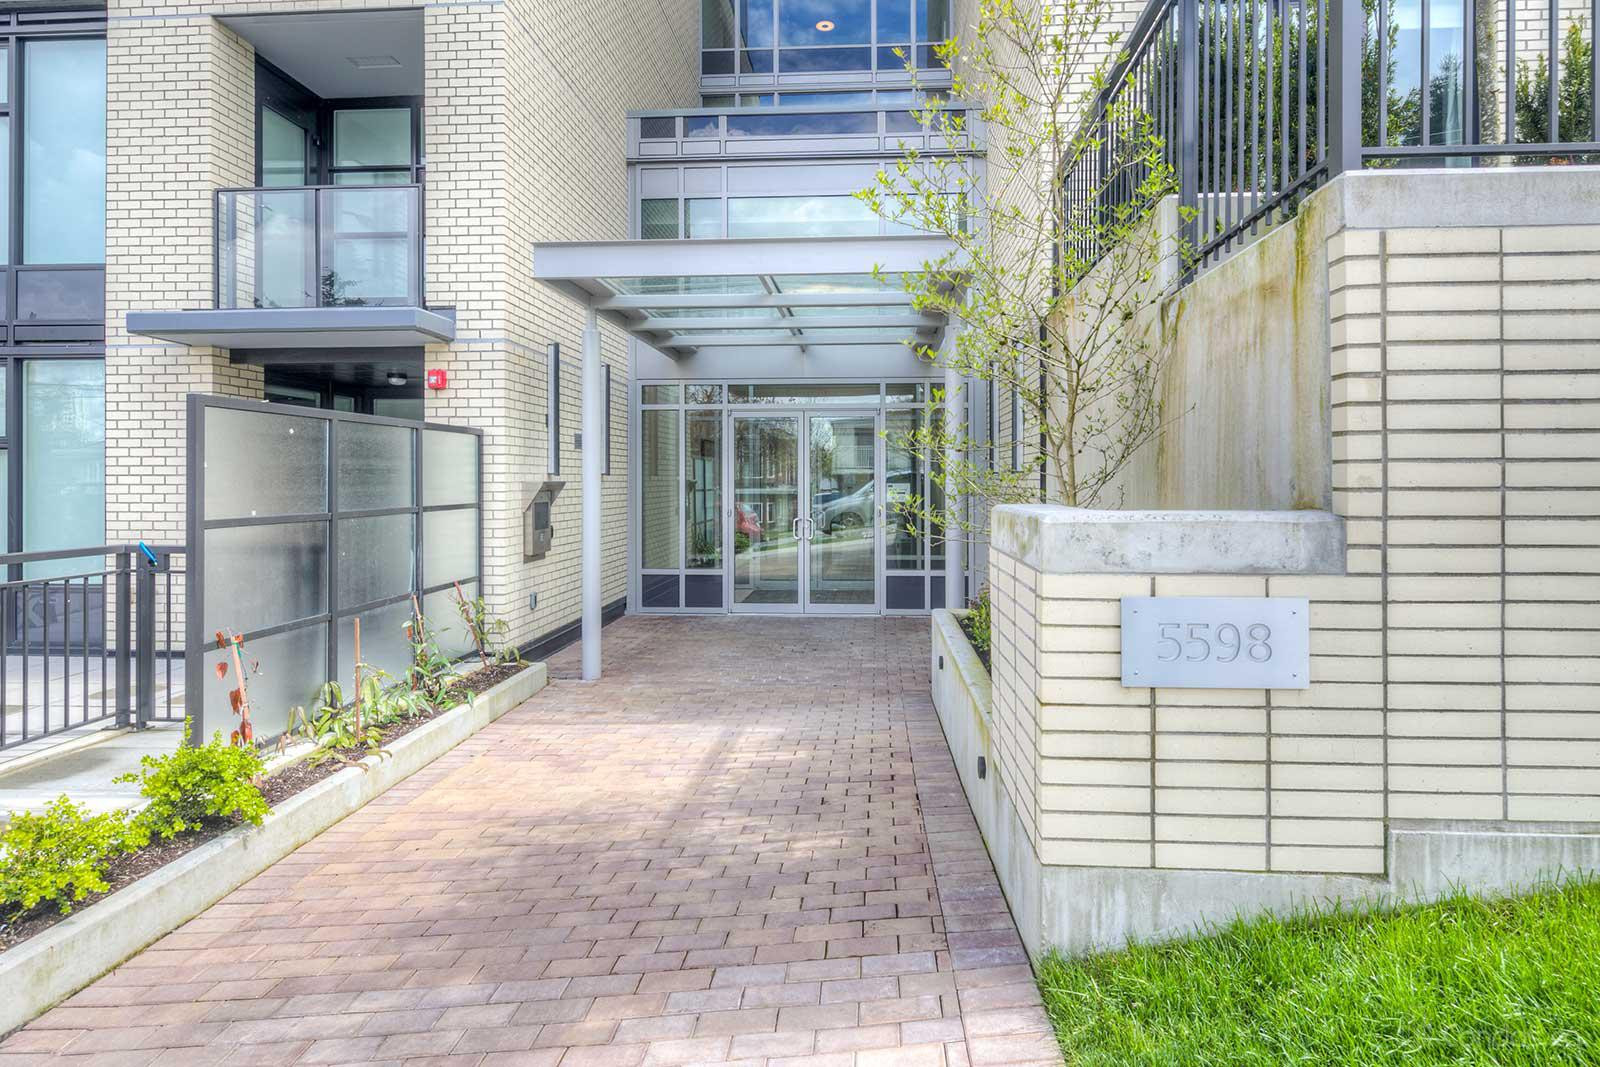 The Gardens at 5598 Ormidale St, Vancouver 1